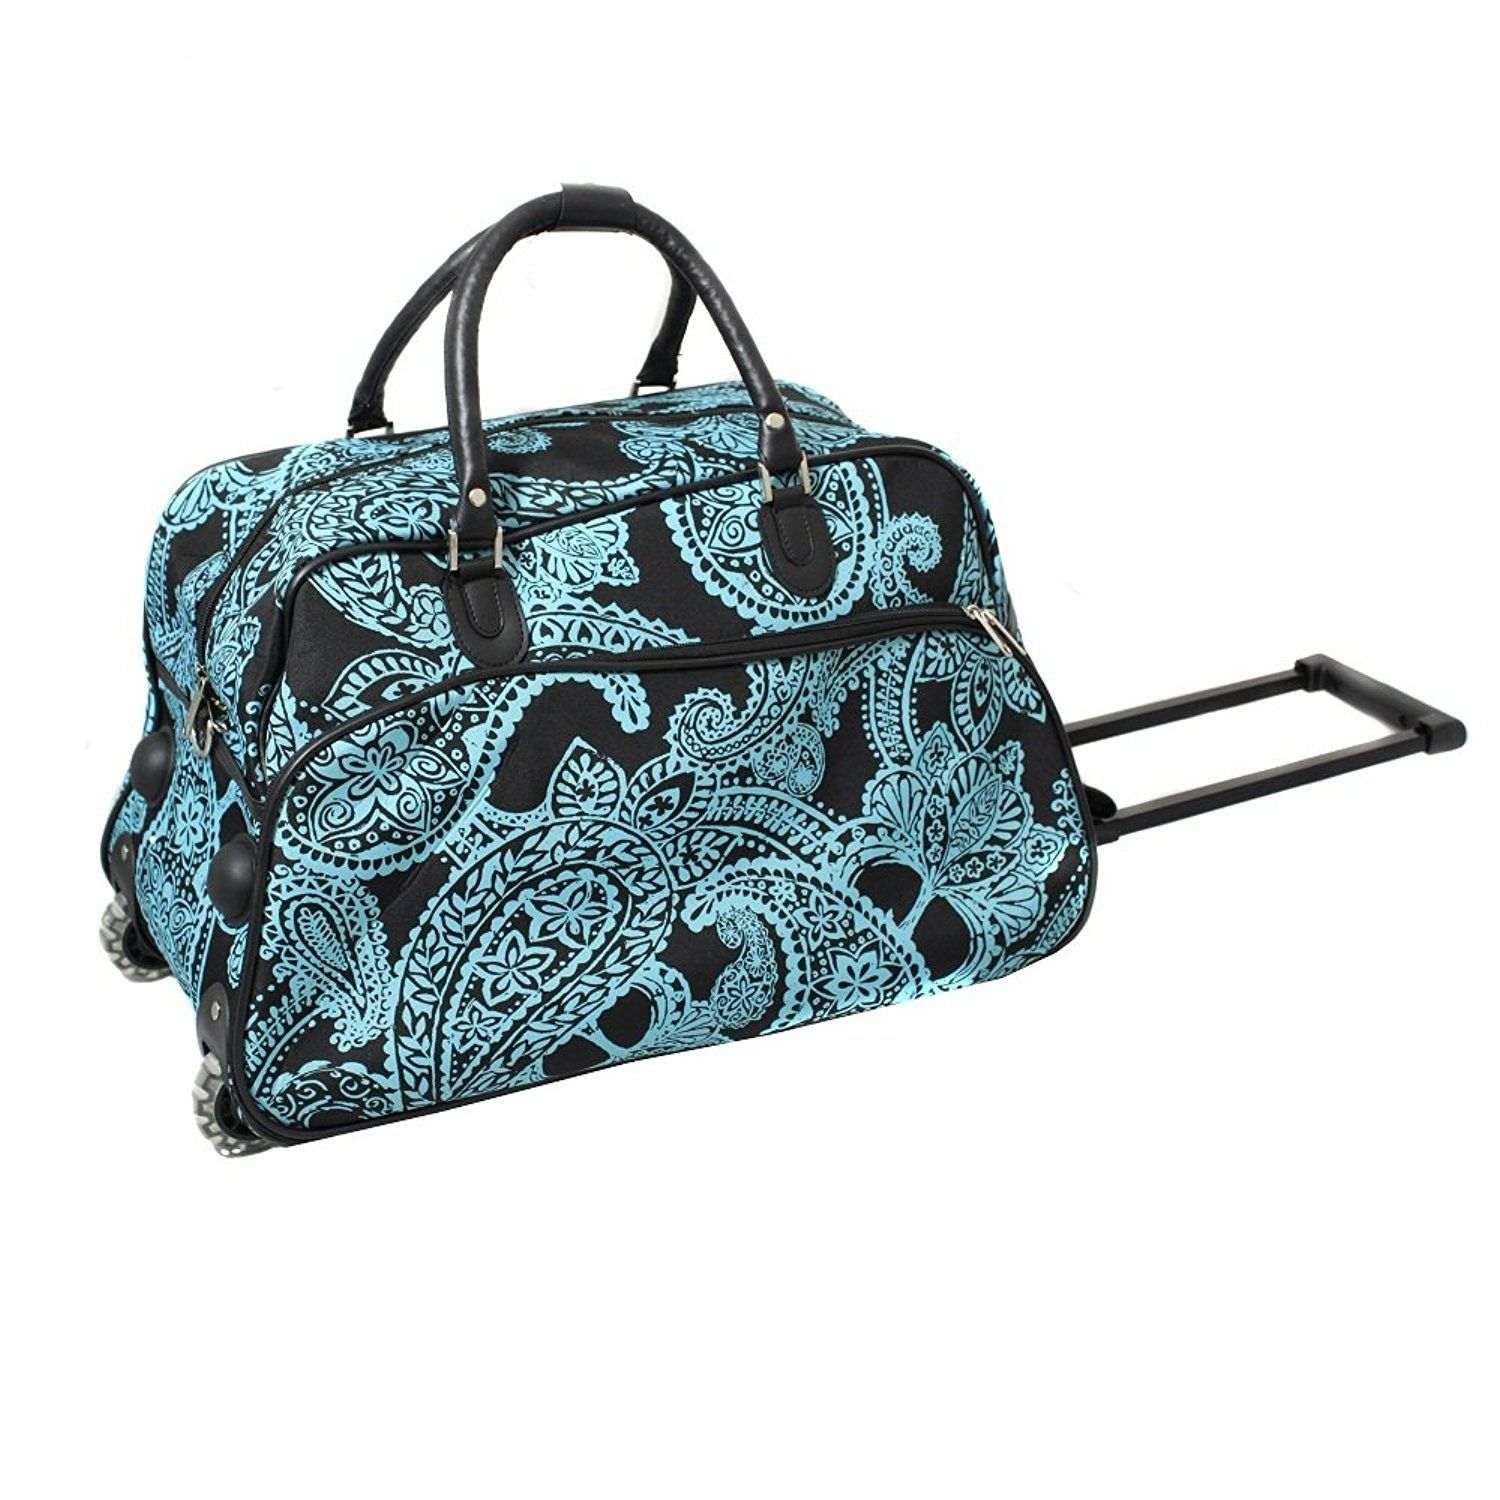 Girls Black Blue Paisley Carry Duffel Bag Floral Themed Flower Luggage c0d7c674b1bf5